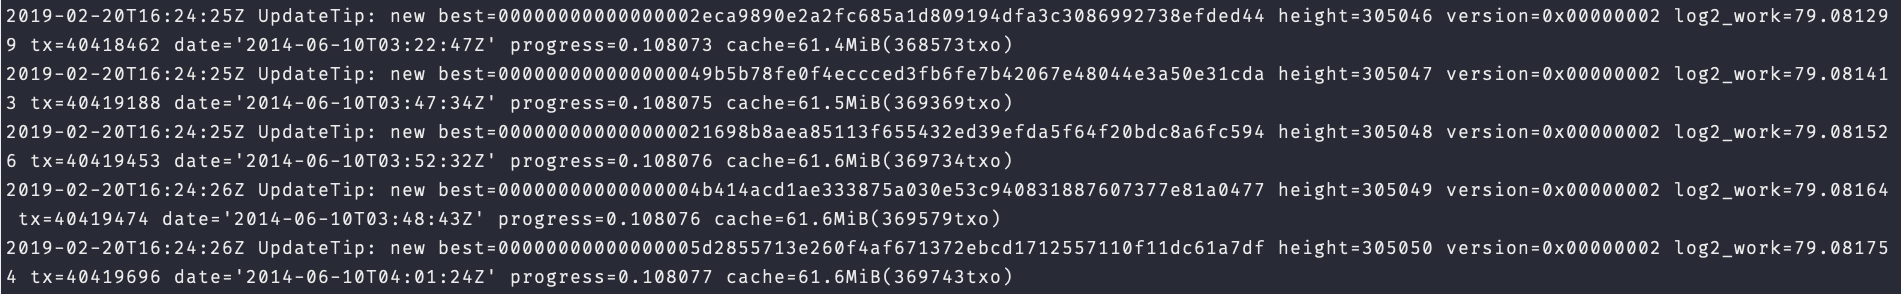 Enable the RPC JSON API with password authentication in Bitcoin Core